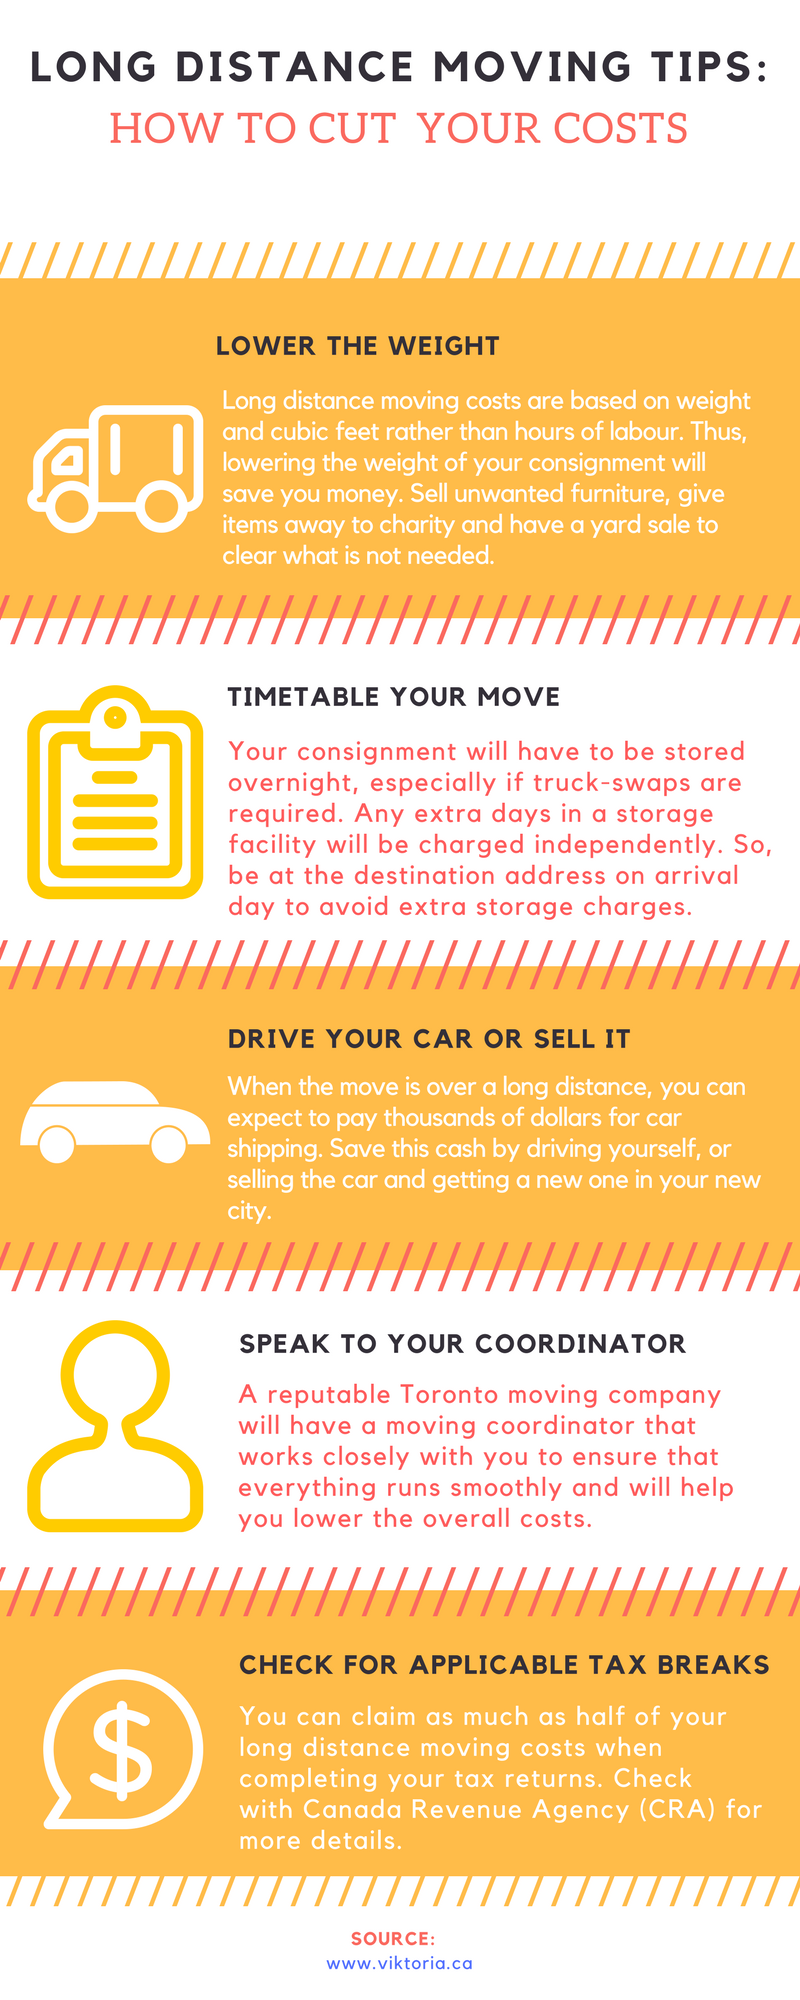 Viktoria Movers Toronto - Long Distance Moving Tips Infographic